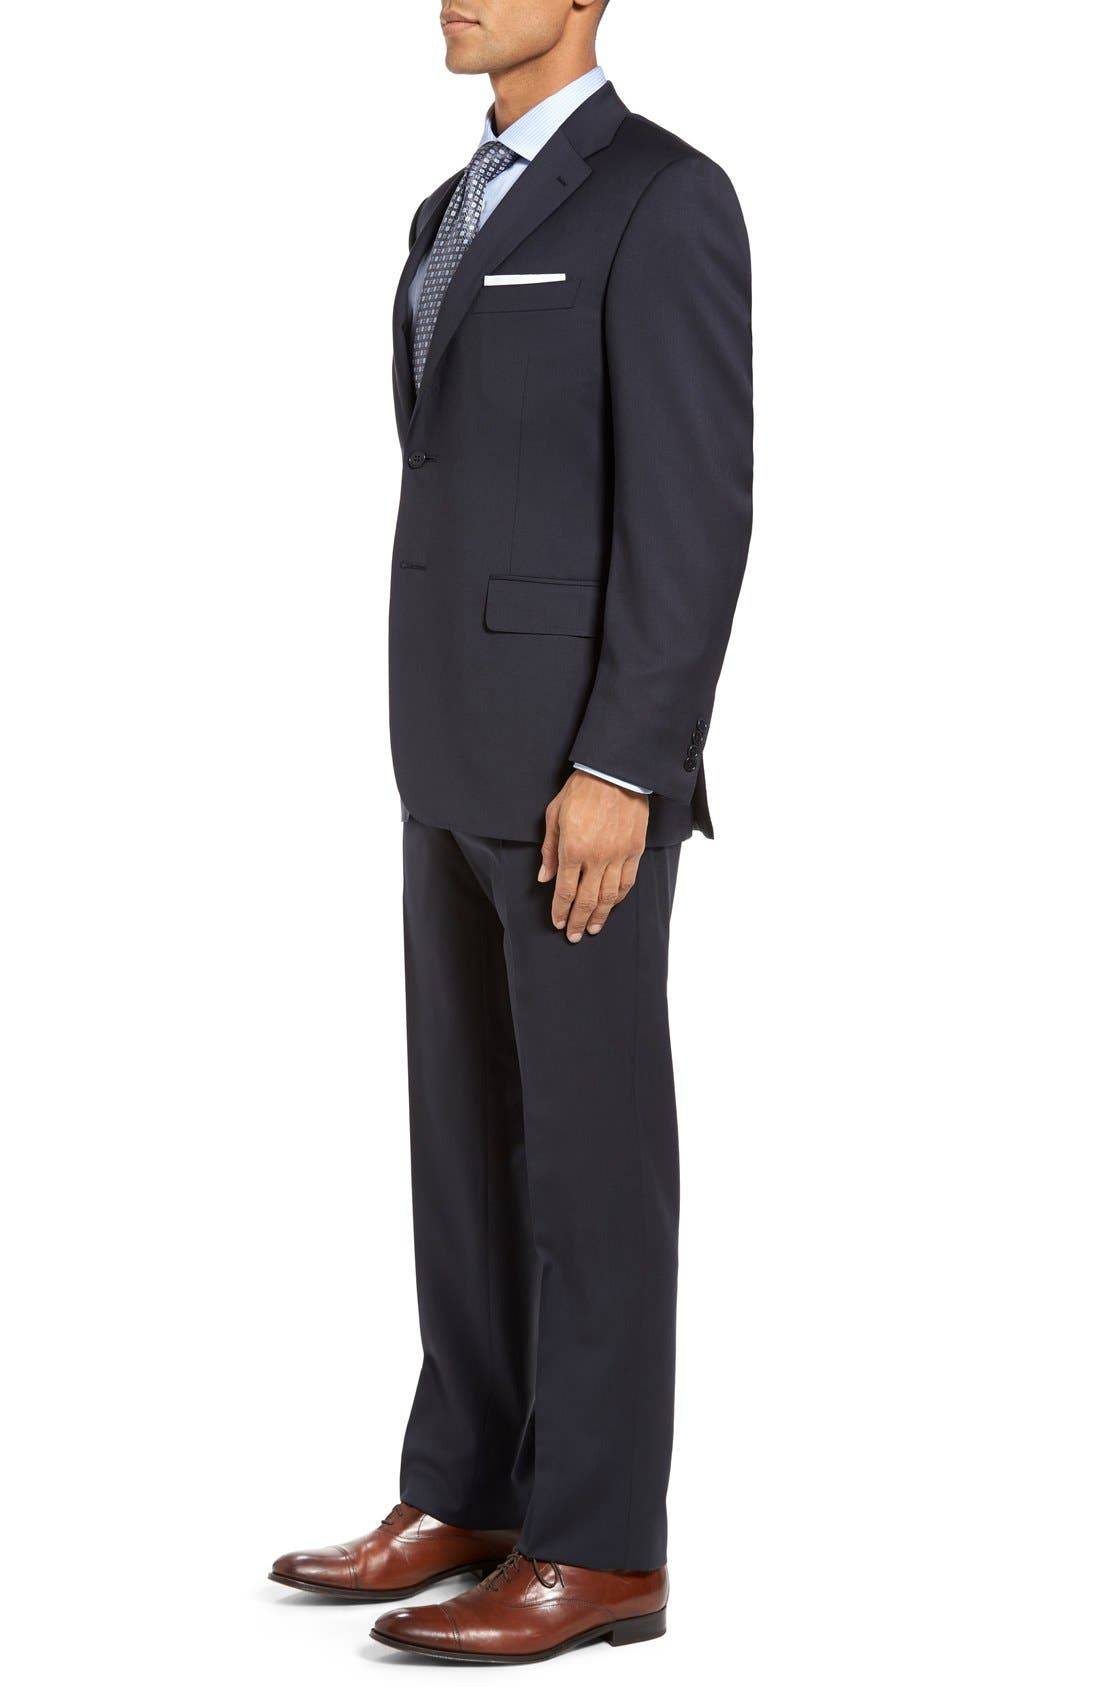 CANALI, Classic Fit Solid Wool Suit, Alternate thumbnail 3, color, NAVY